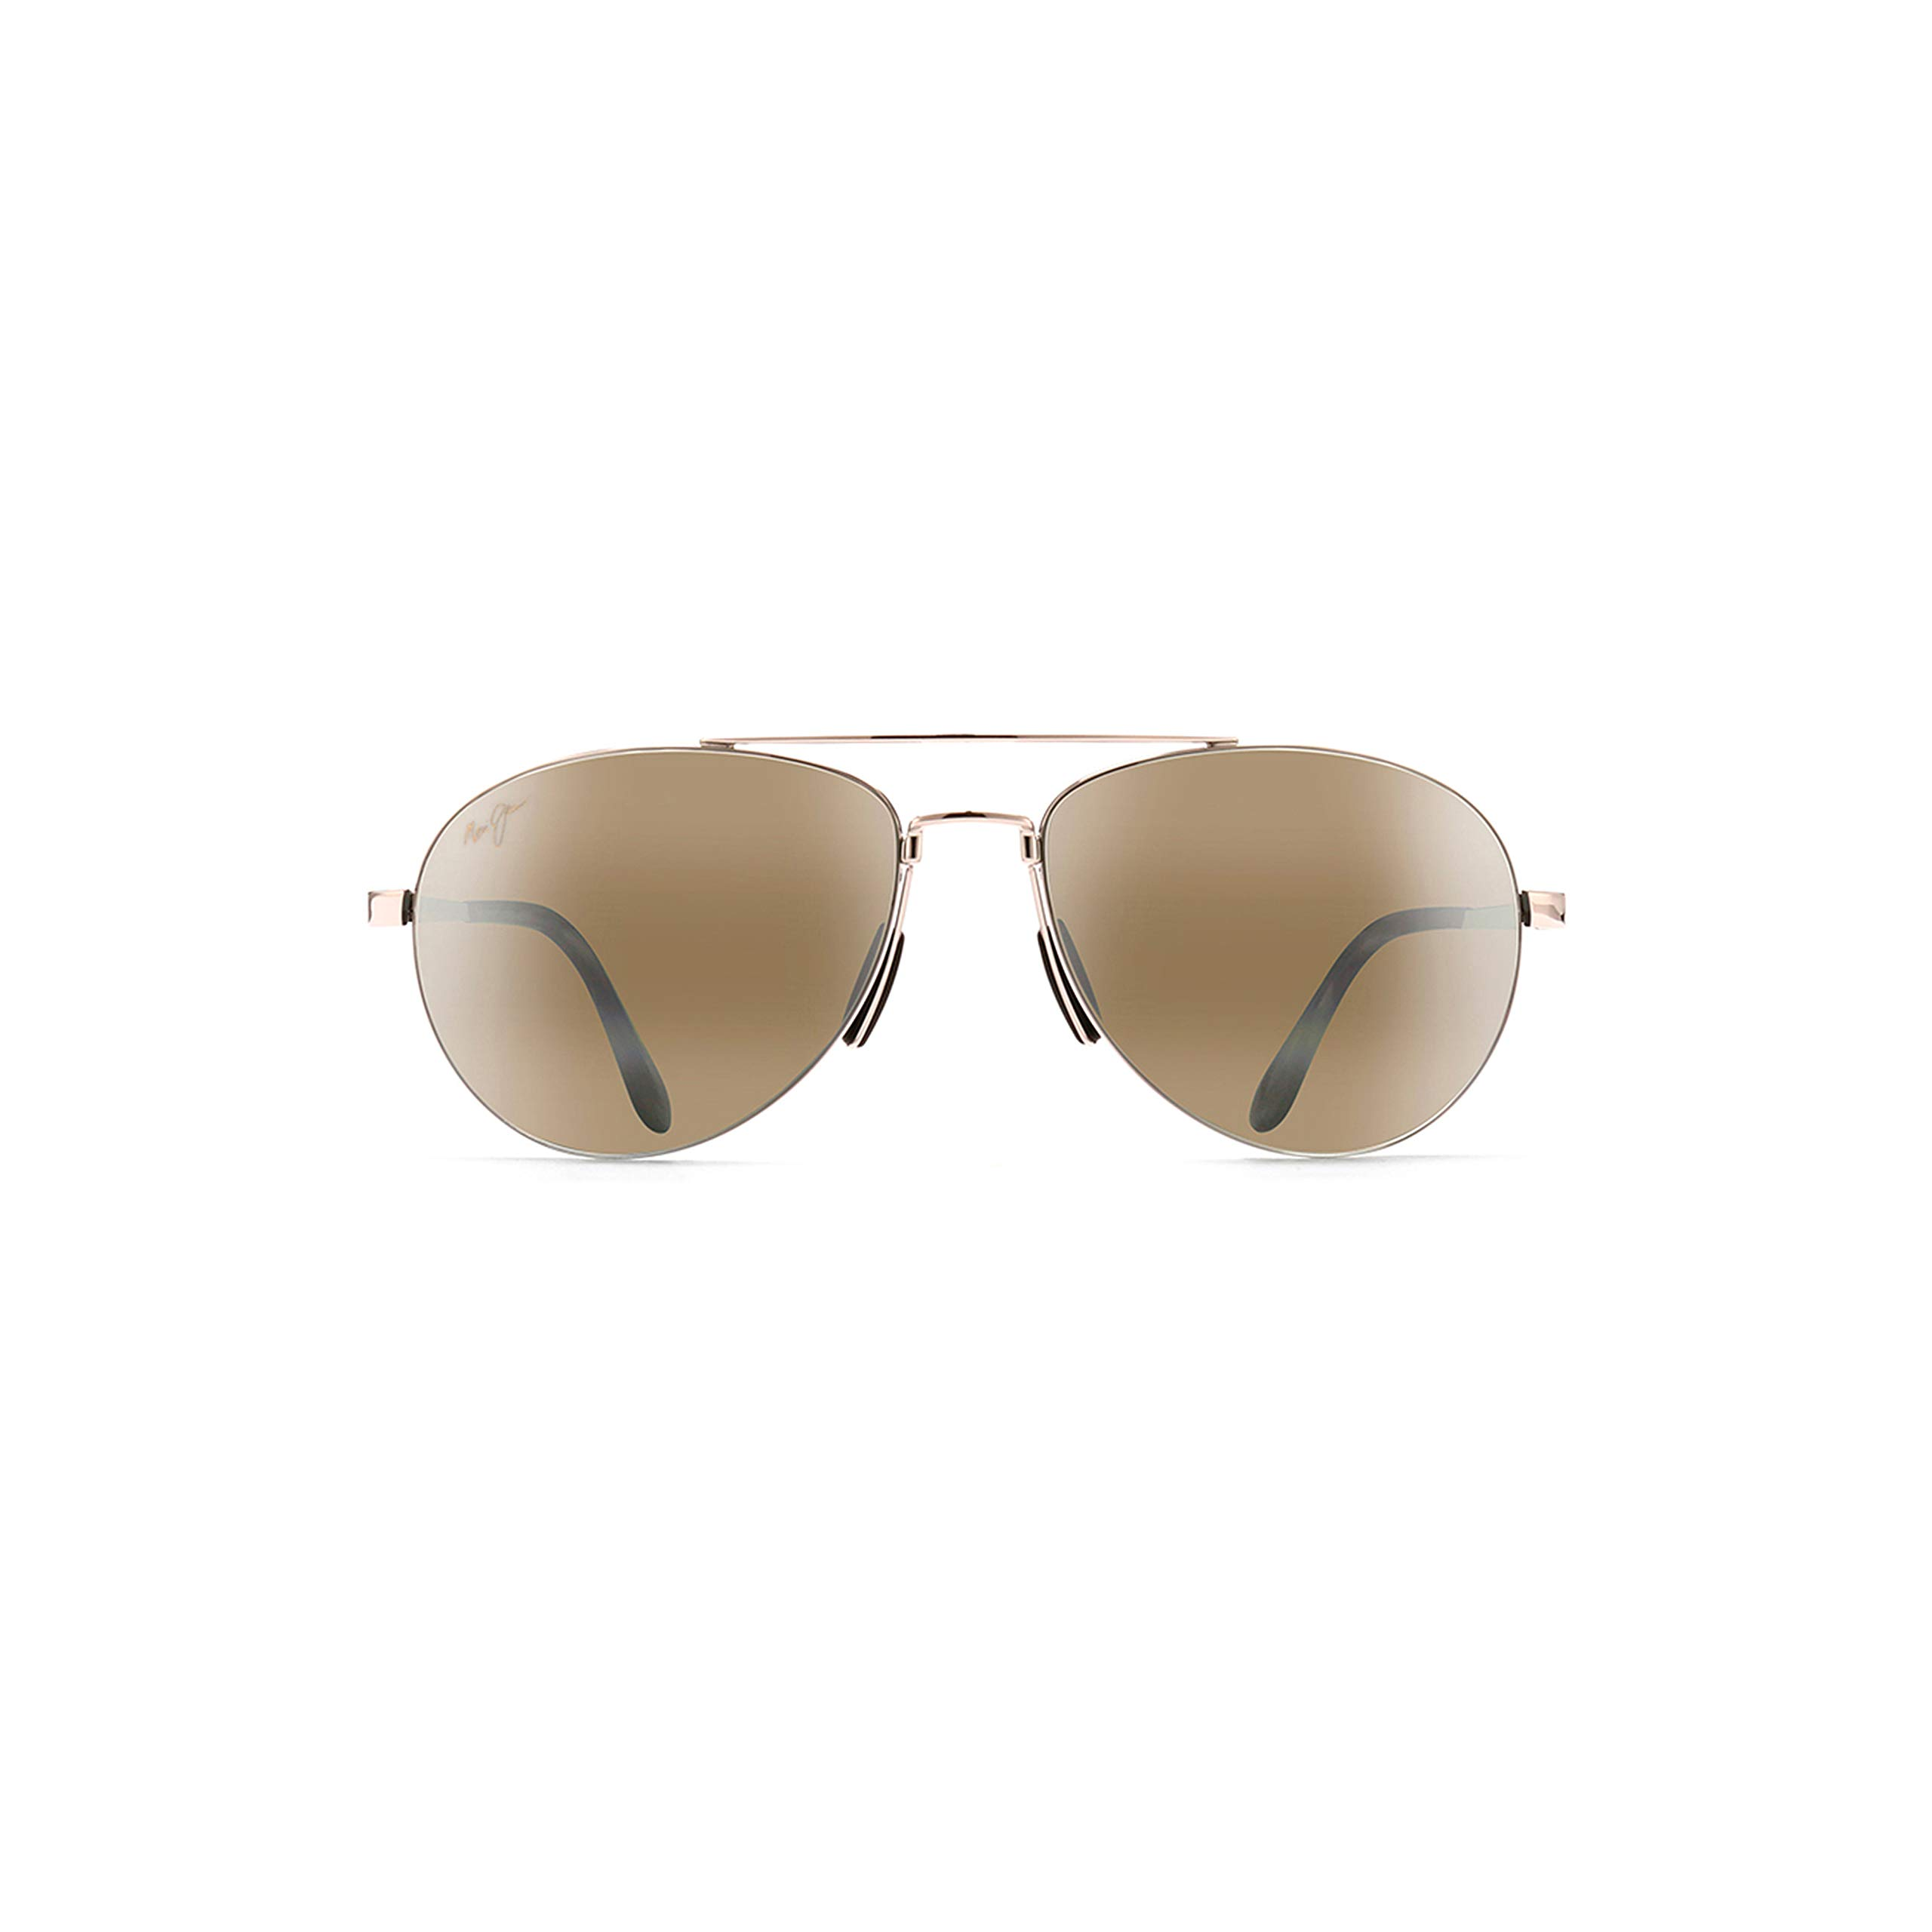 Maui Jim Pilot H210-16 | Sunglasses, Gold Aviator, with with Patented PolarizedPlus2 Lens Technology